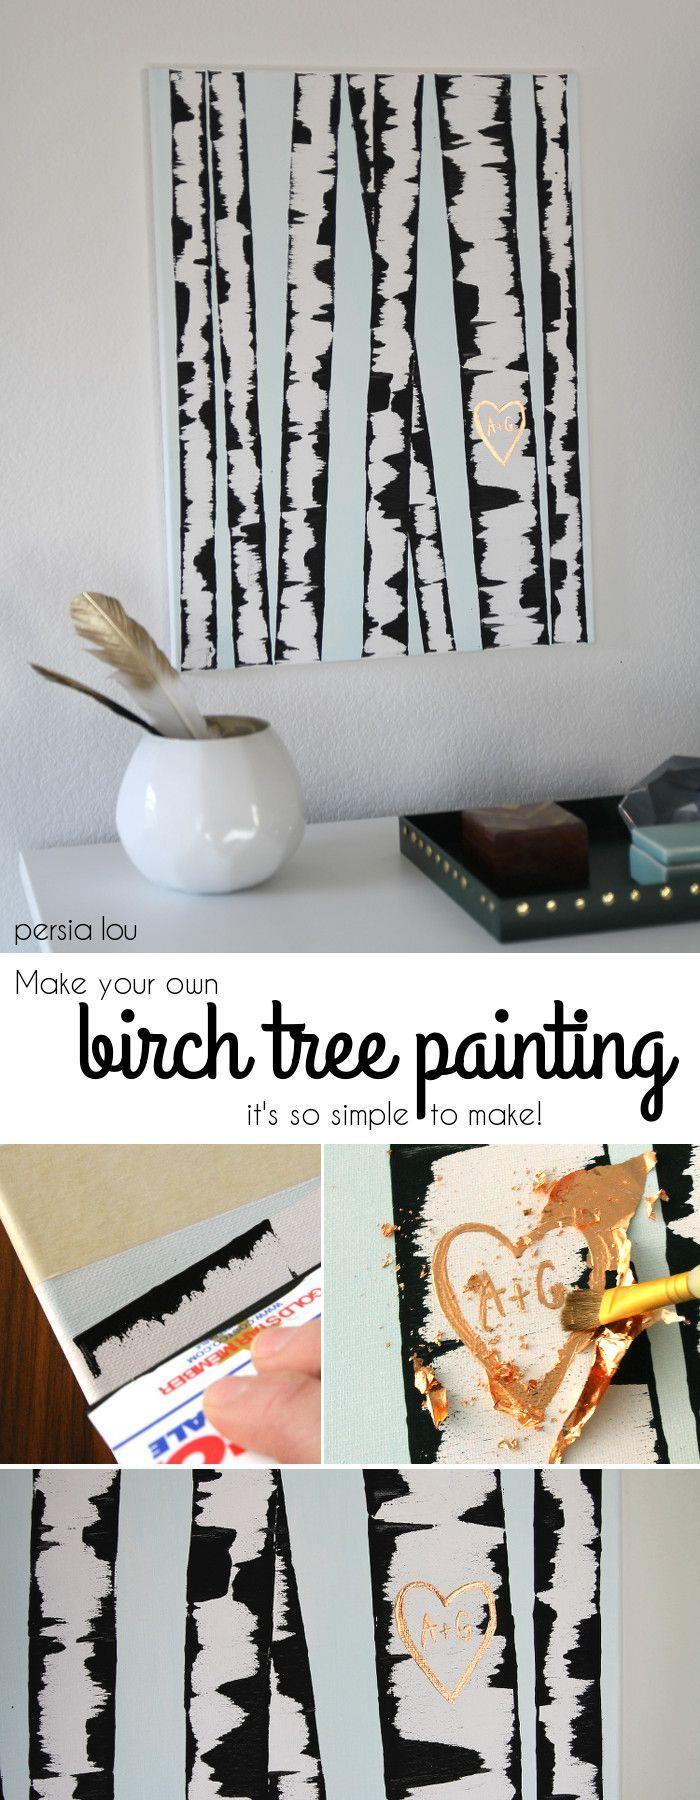 Birch tree painting dump a day for Cheap artwork ideas